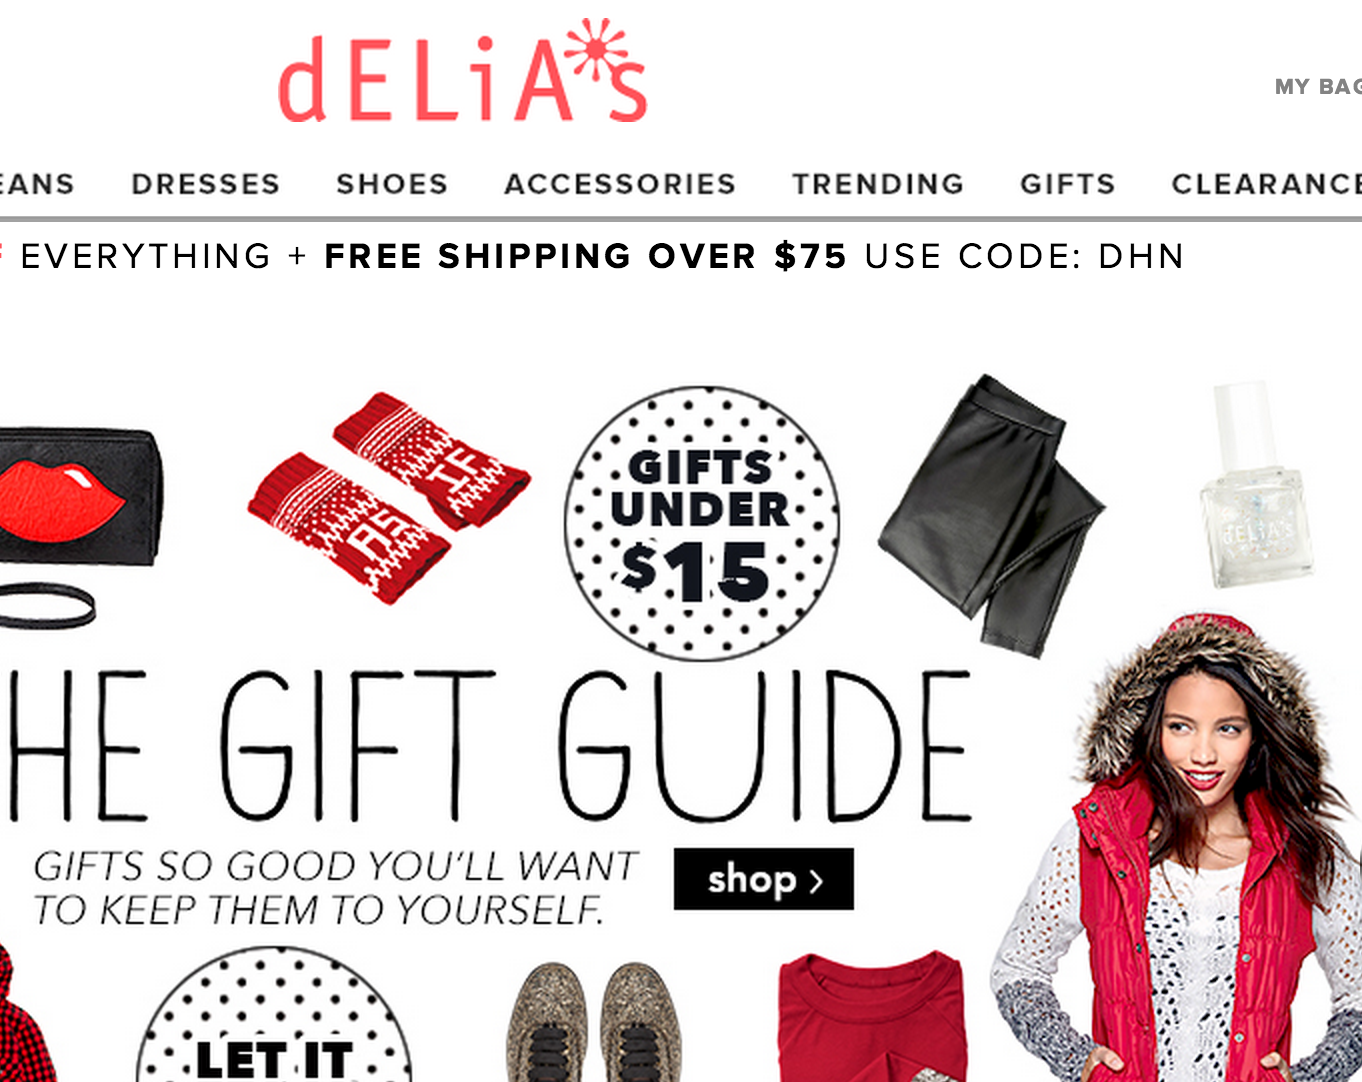 Teen-Targeted Retailer dELiA*s Is bANkruPt. Will Close Stores, Liquidate Merch